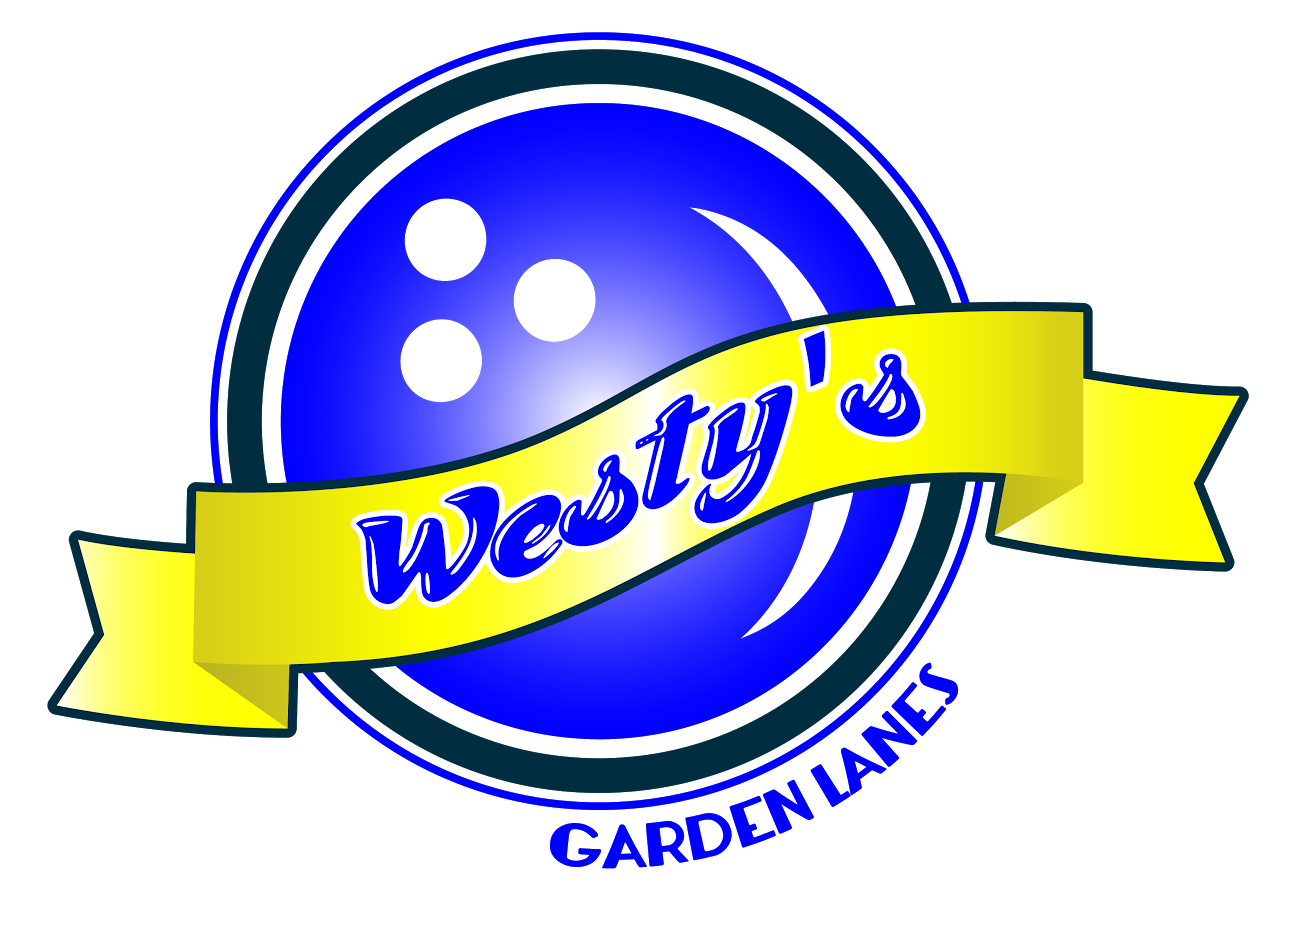 Westys.png